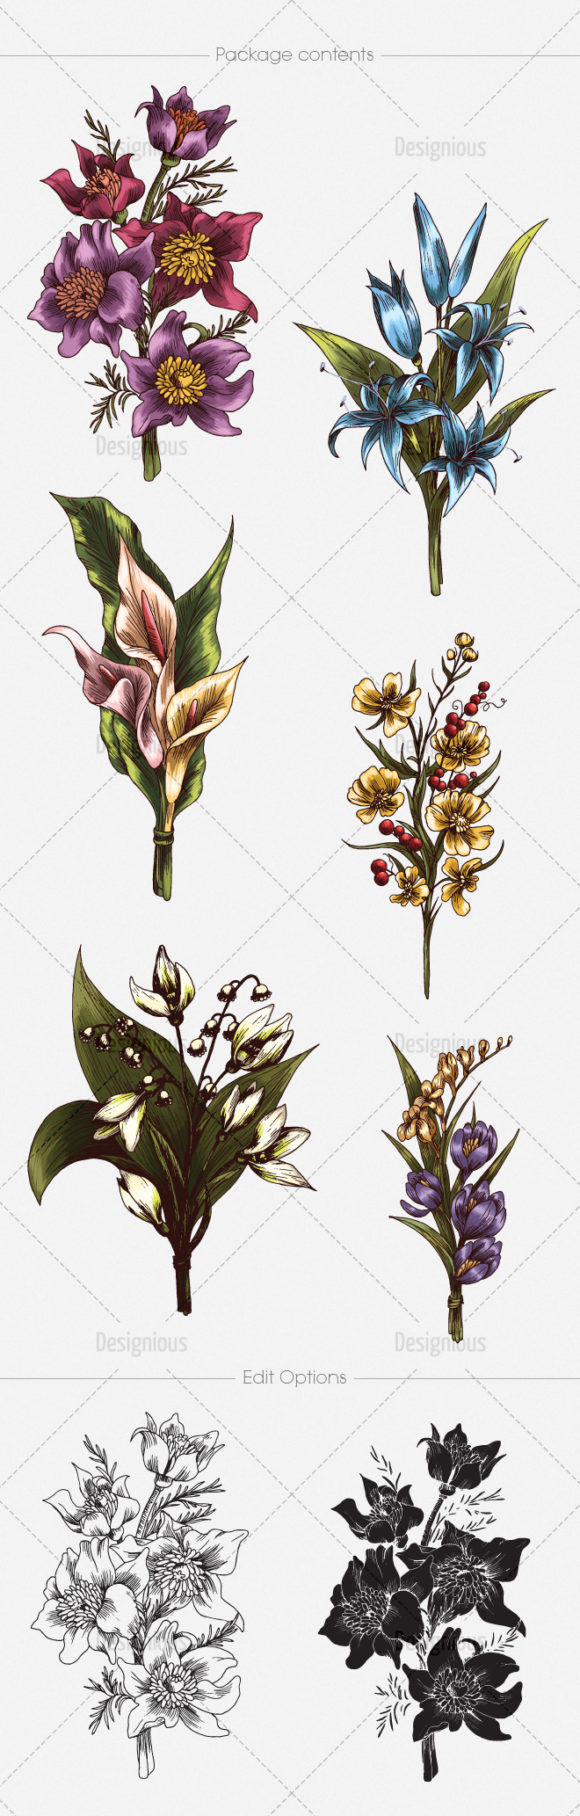 Floral Vector Pack 133 products designious vector floral bouquets 133 large